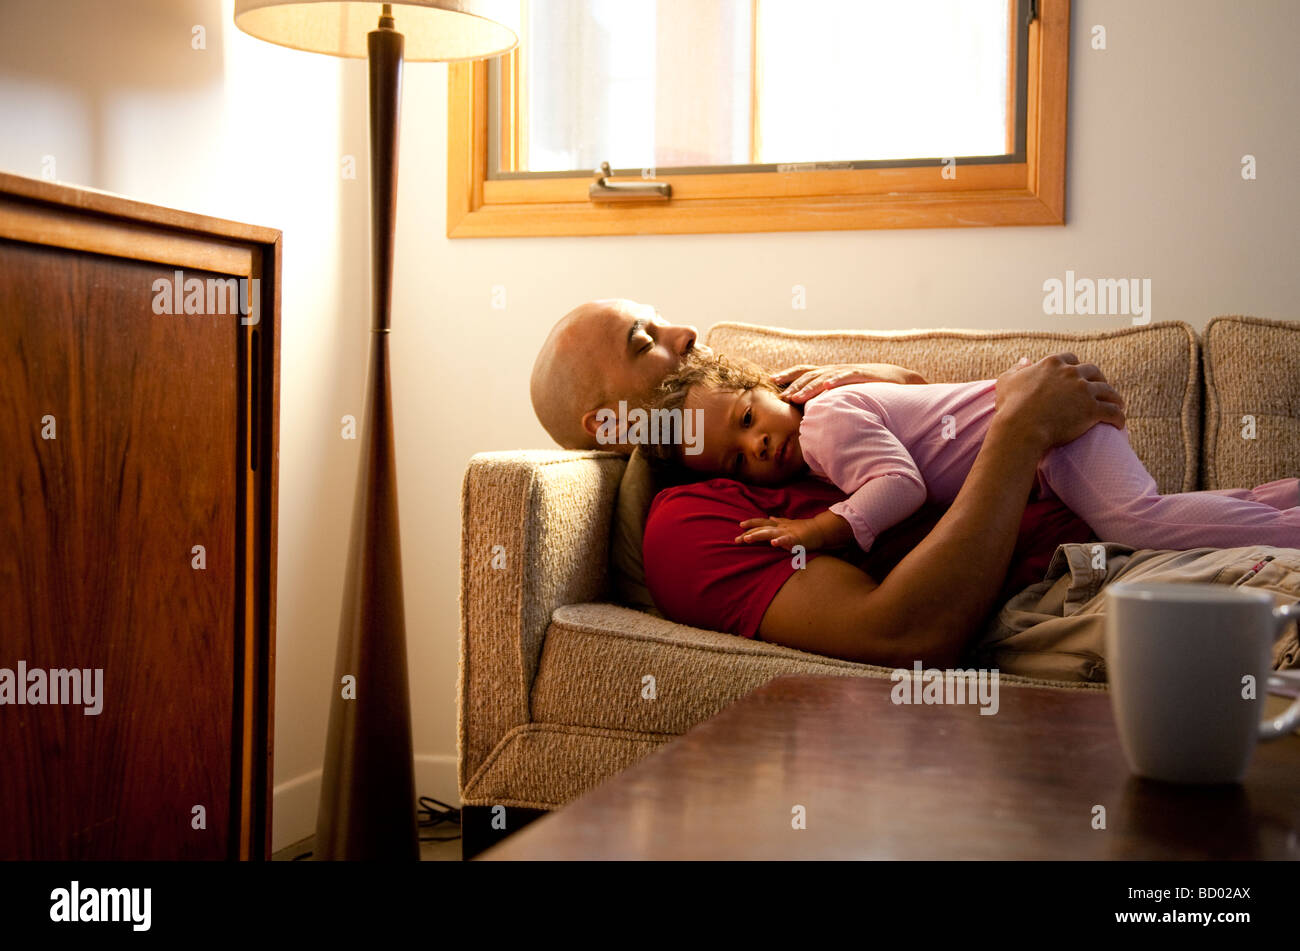 Dad and Child take a nap on the couch - Stock Image